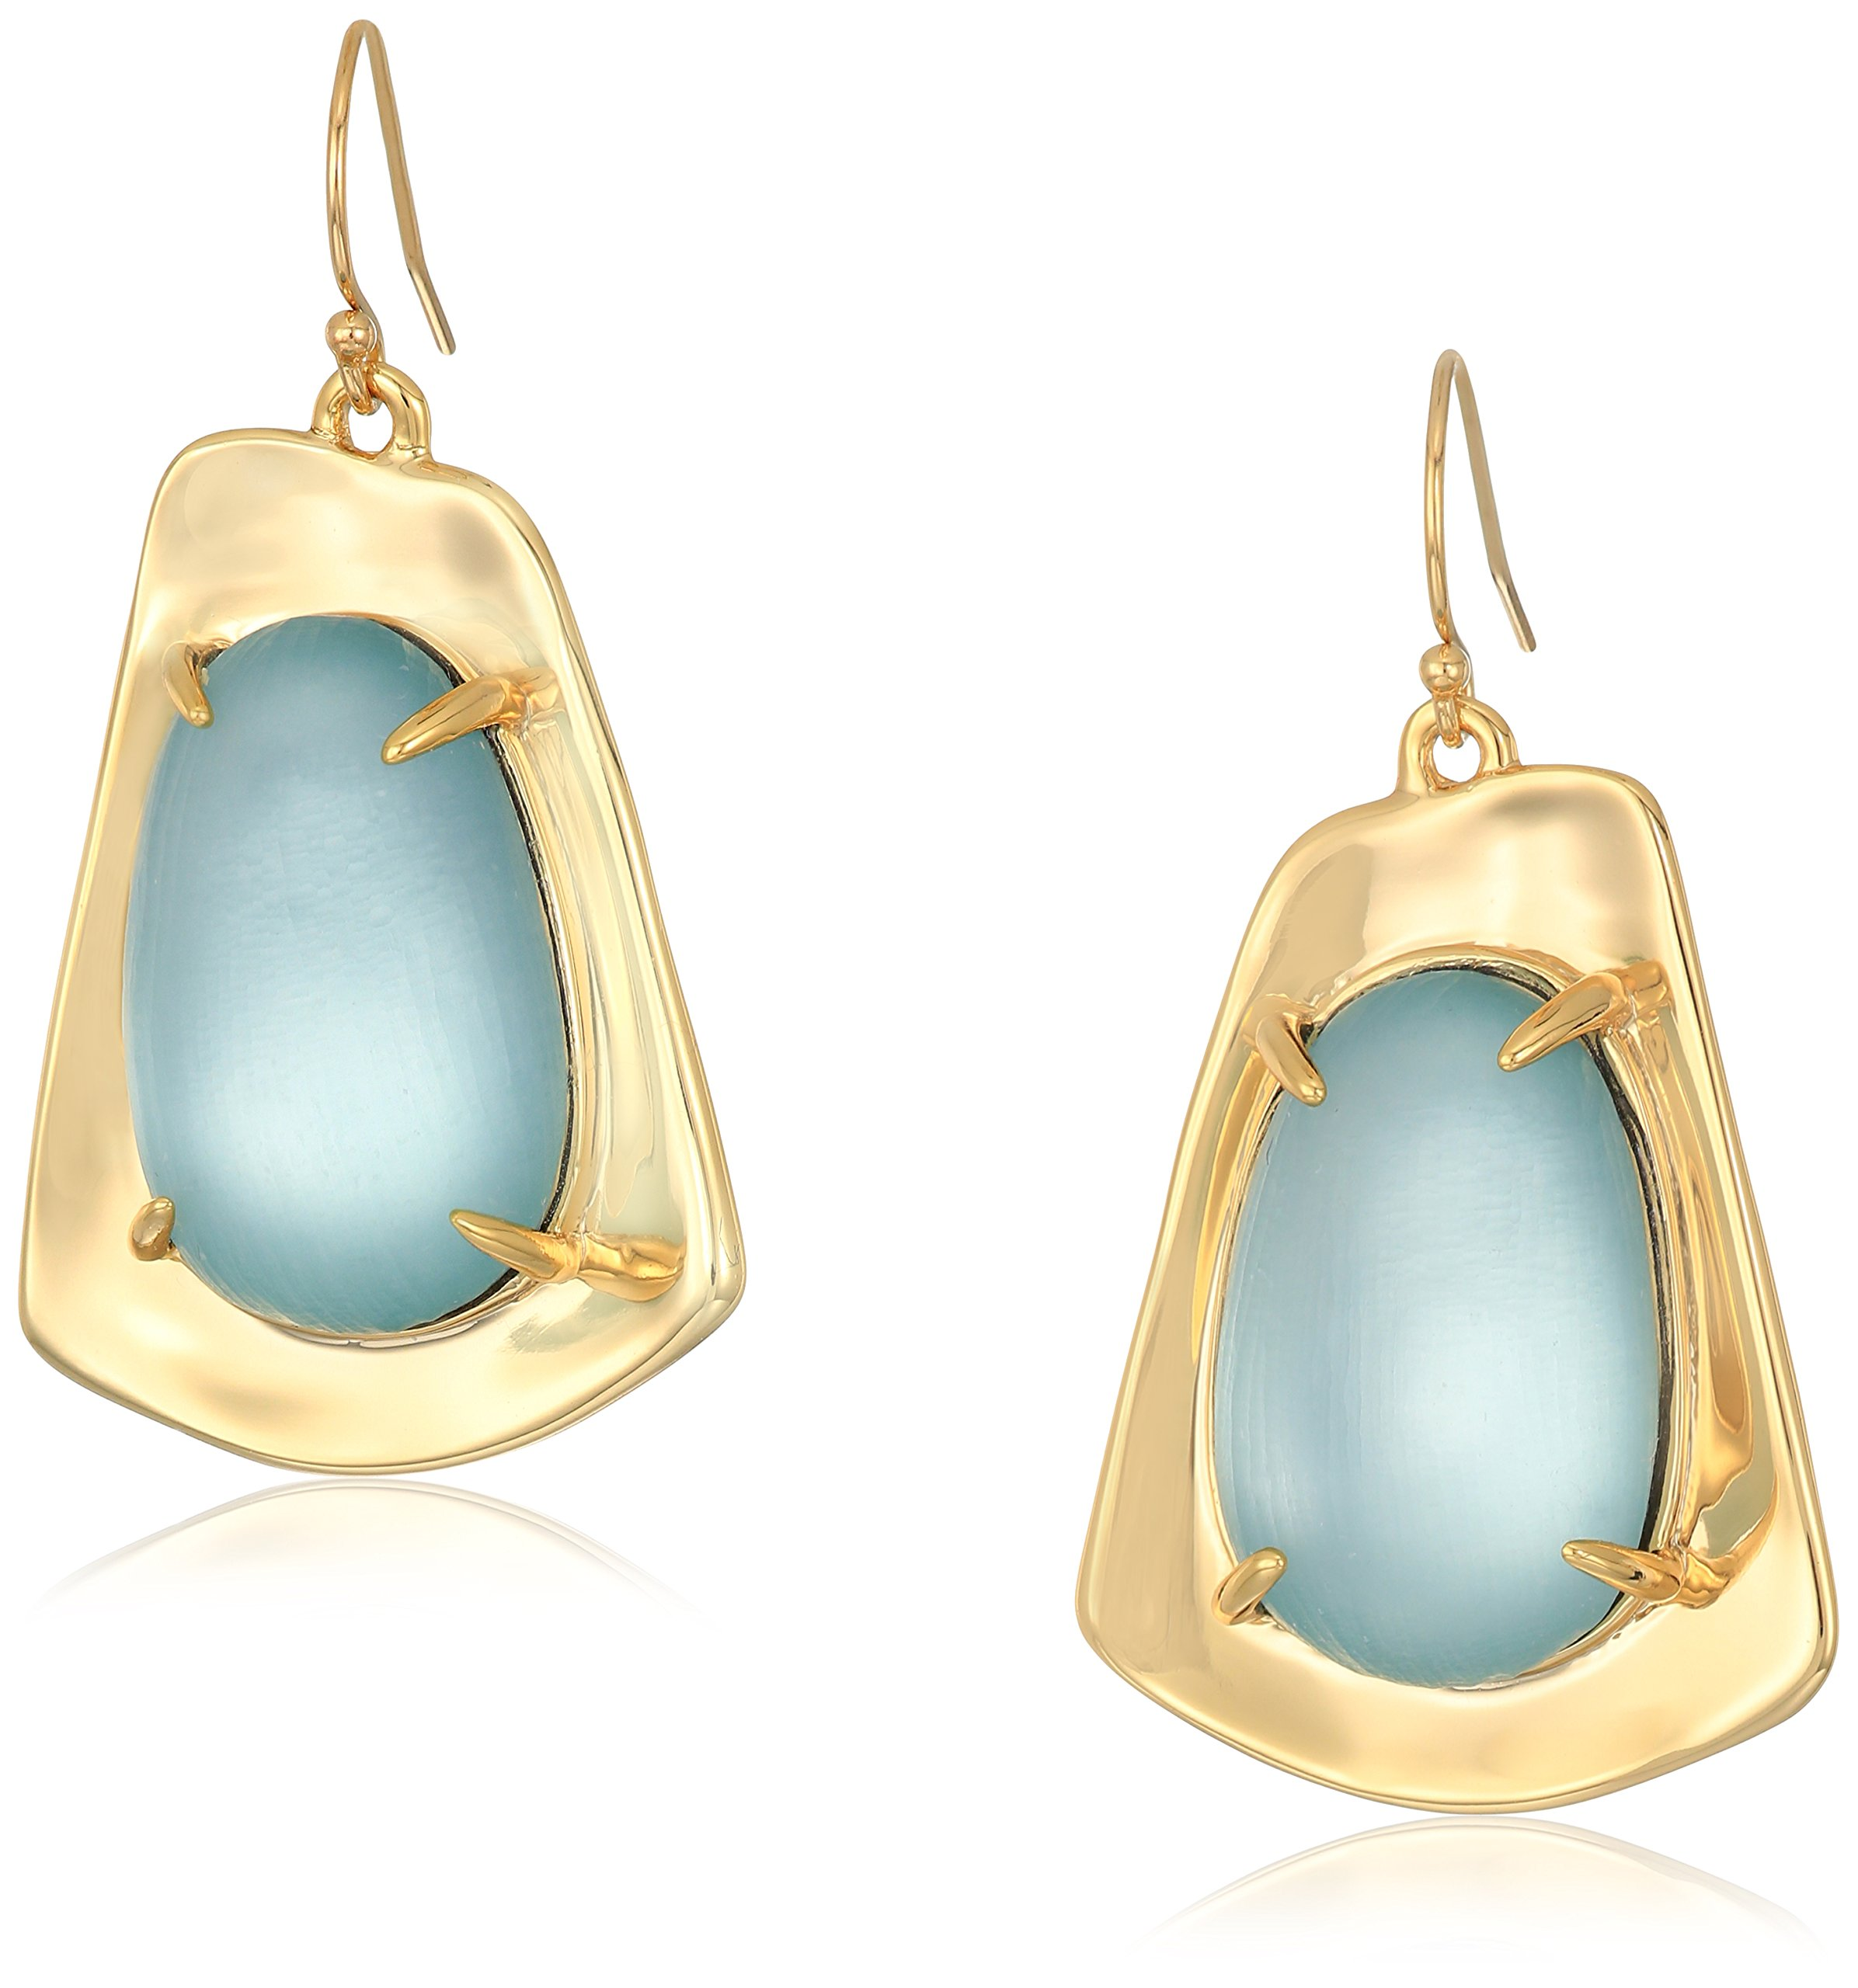 Alexis Bittar Watery Capstone-Shape Drops with Lucite Detail Blue Grey Drop Earrings